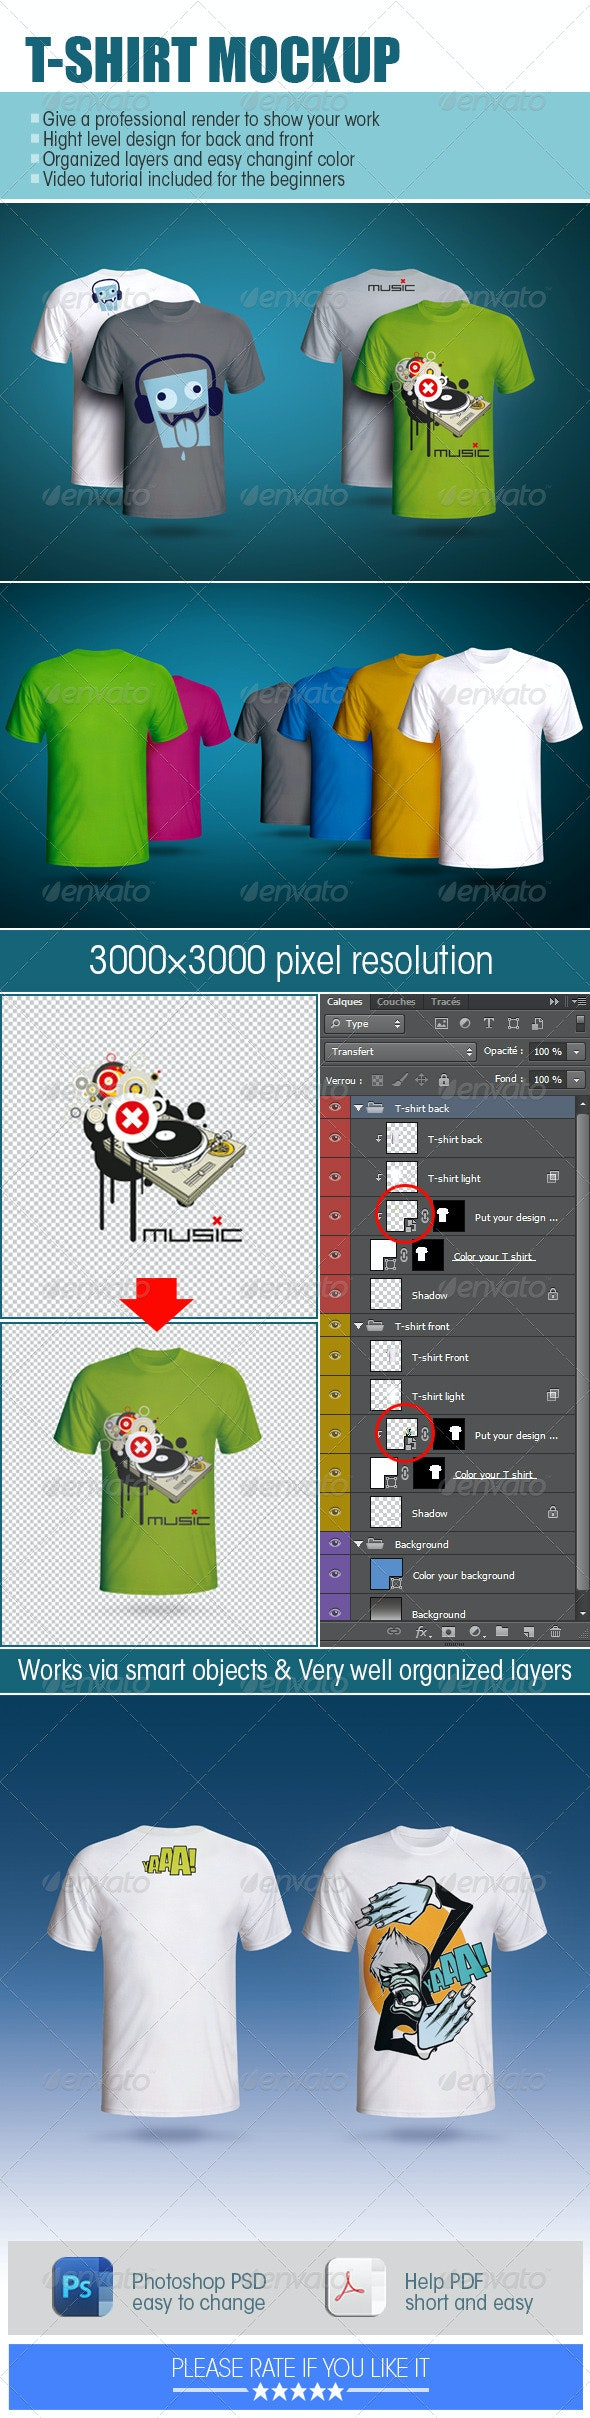 T-shirt Mockup - Product Mock-Ups Graphics